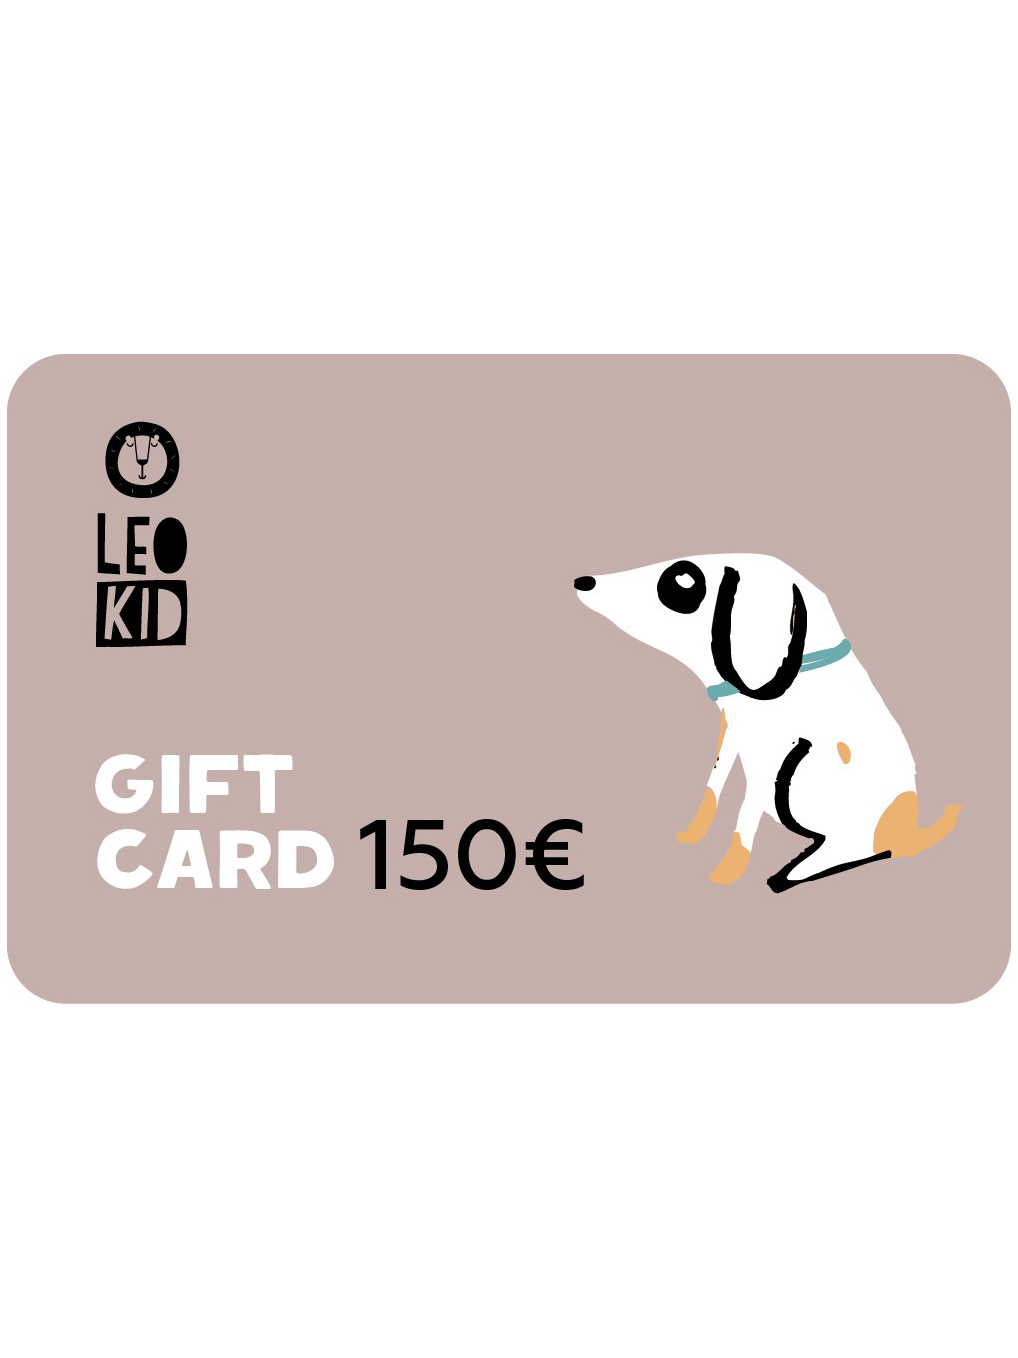 Electronic gift card 150€